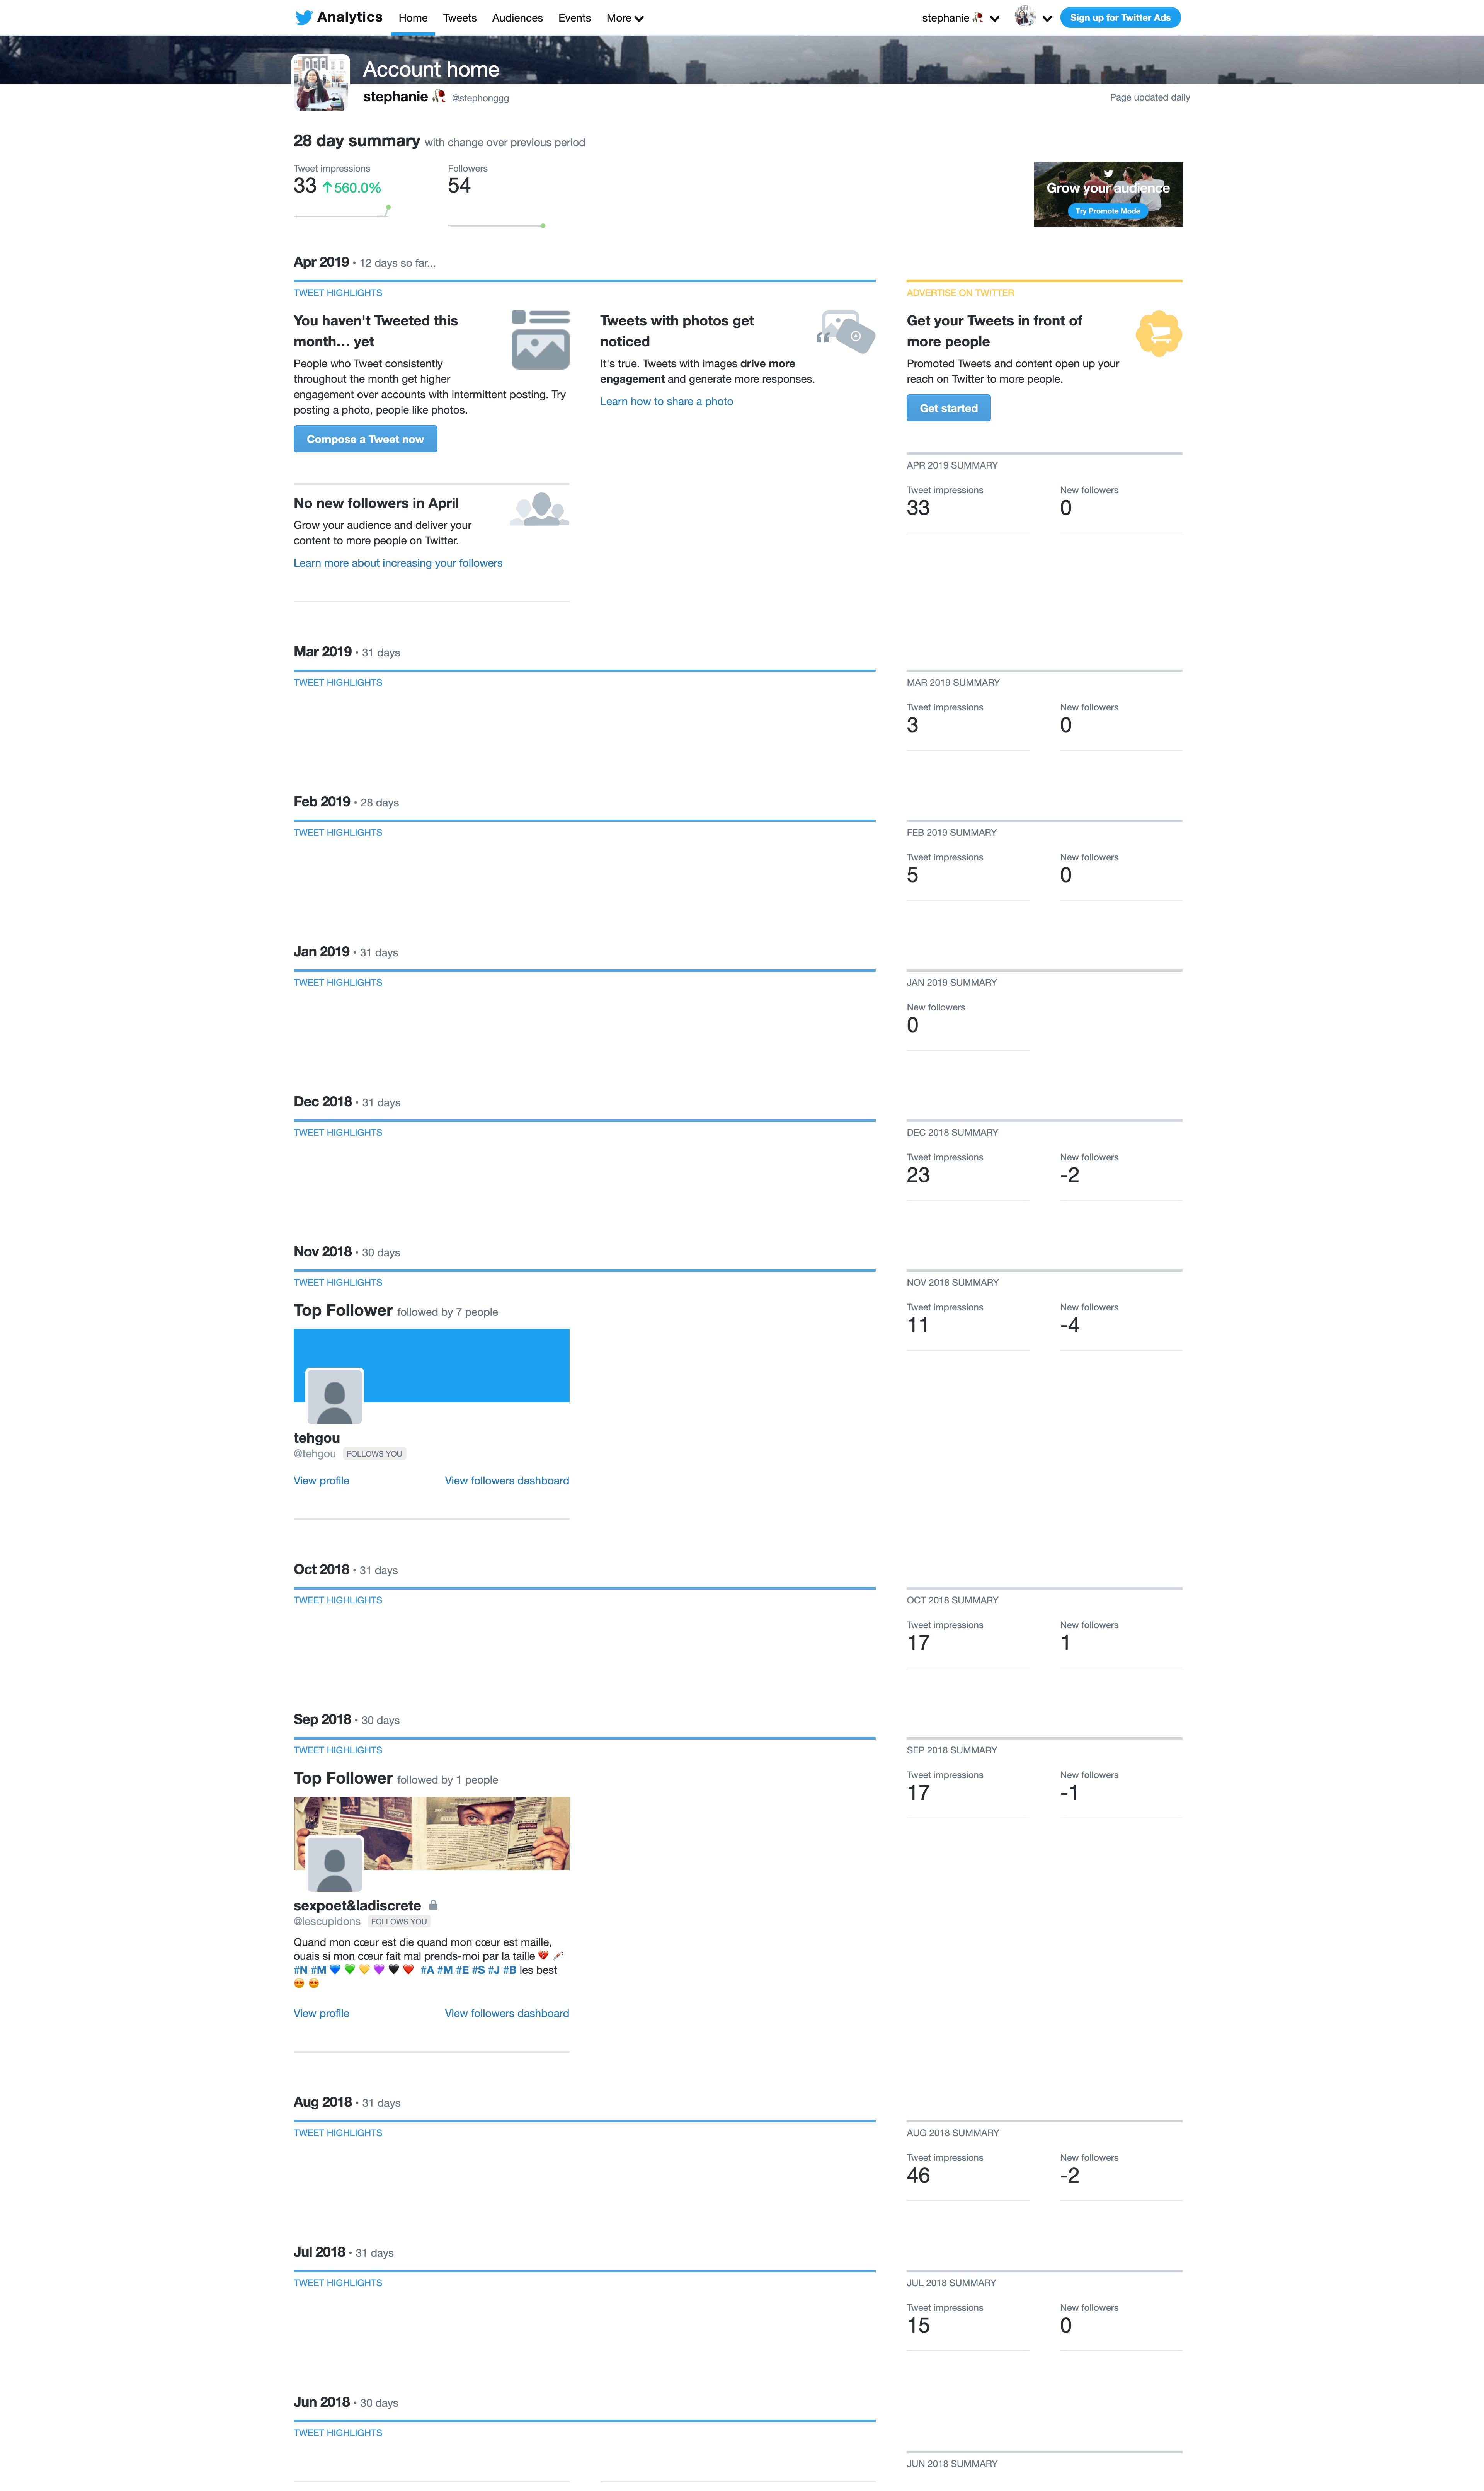 Analytics by Twitter from UIGarage